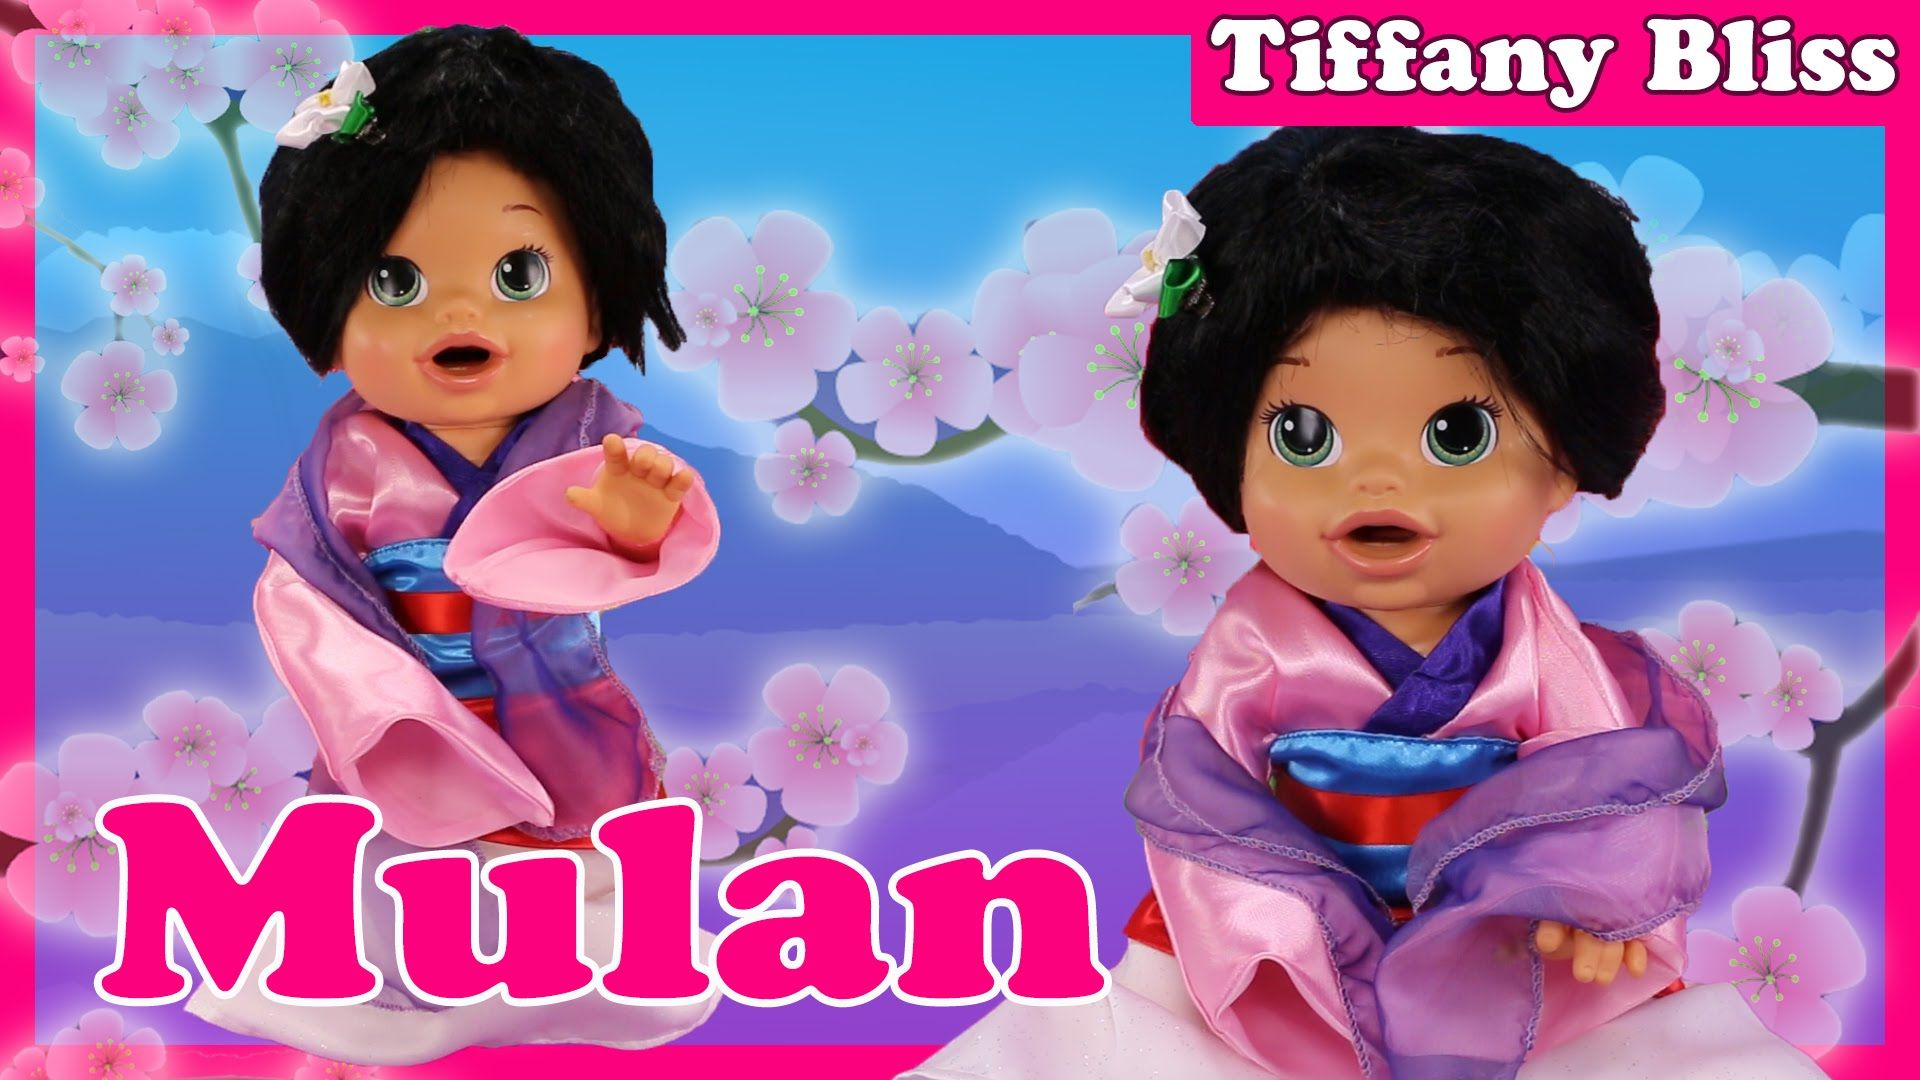 Mulan Custom Baby Alive Doll Eats Play Doh Poops Blind Bags Surprise Toys Baby Alive Dolls Baby Alive Custom Baby